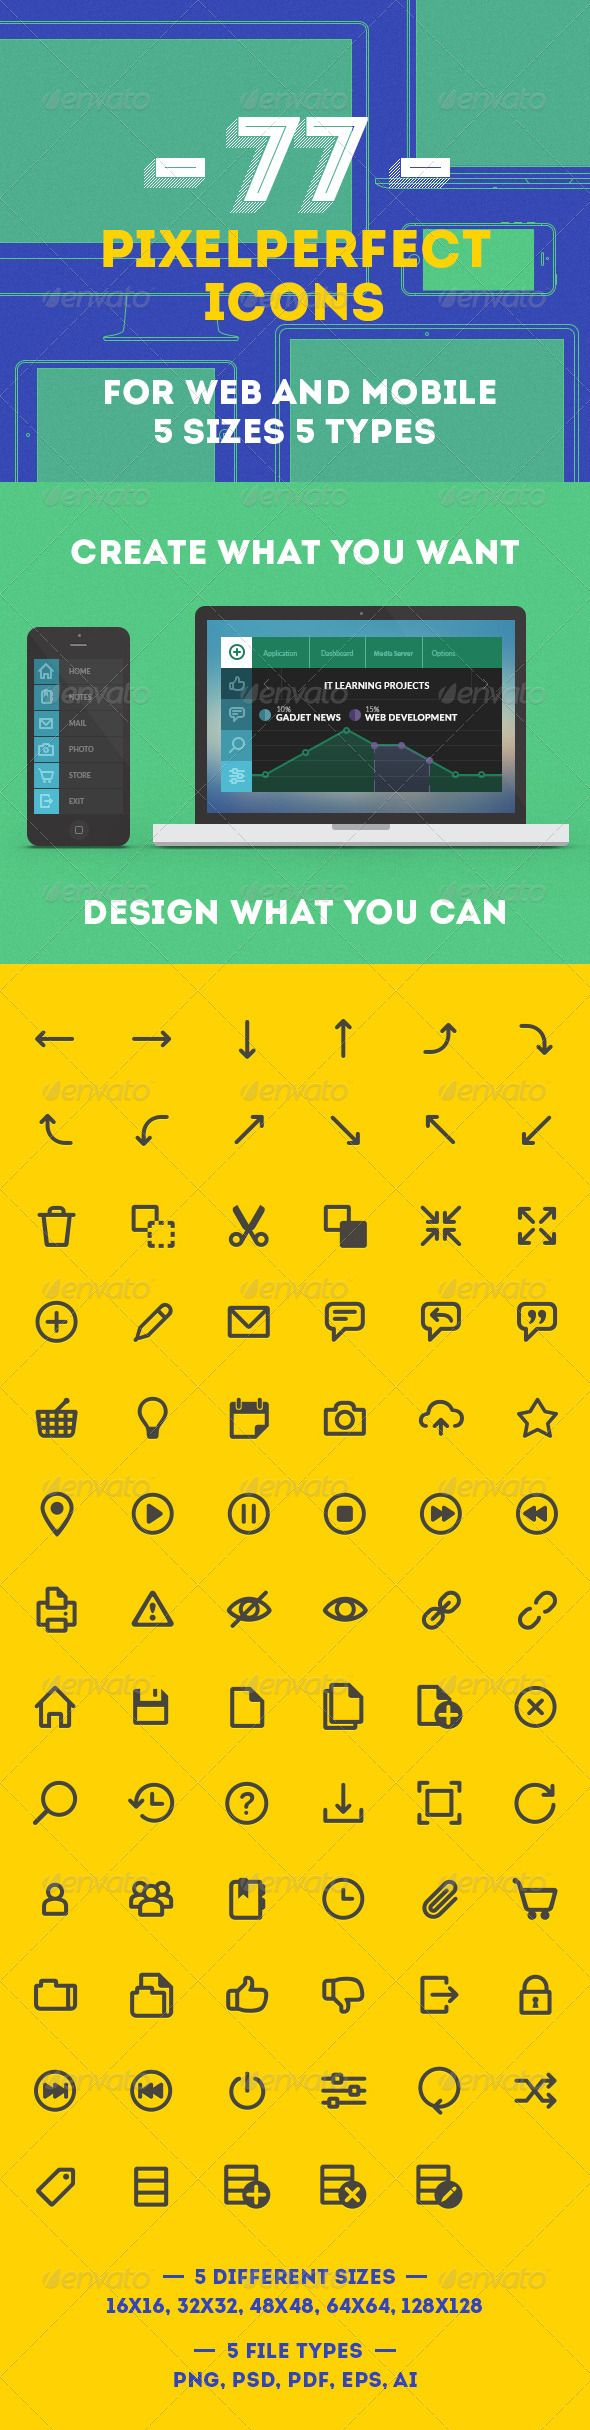 Web and Mobile Icon Package